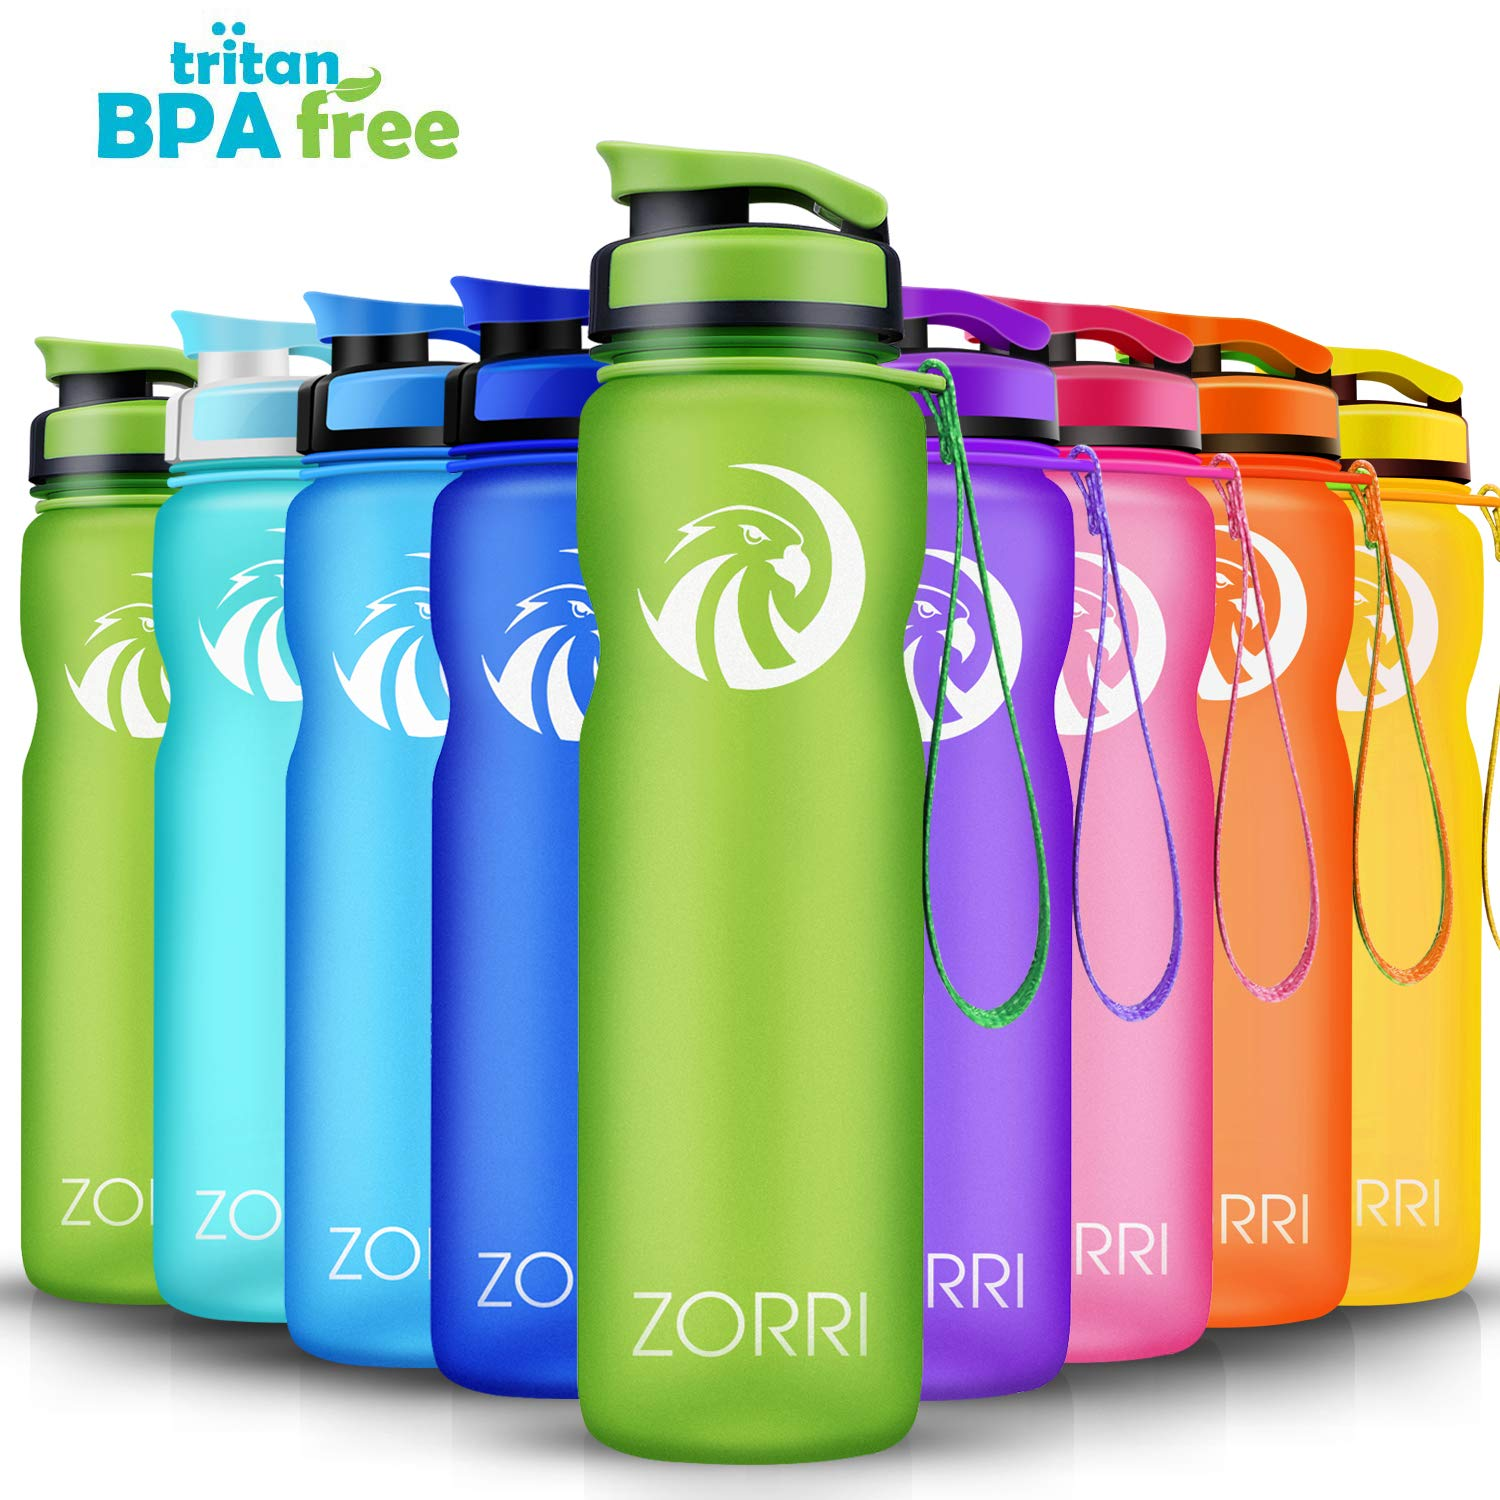 Leak Proof Best Sports Water Bottle 1L// 1.2 Litre// 600// 800ml BPA Free Lightweight Reusable Gym Portable Large Drink Bottles With Filter for Kids Flip Top Lid Camping Cycling Running Hiking